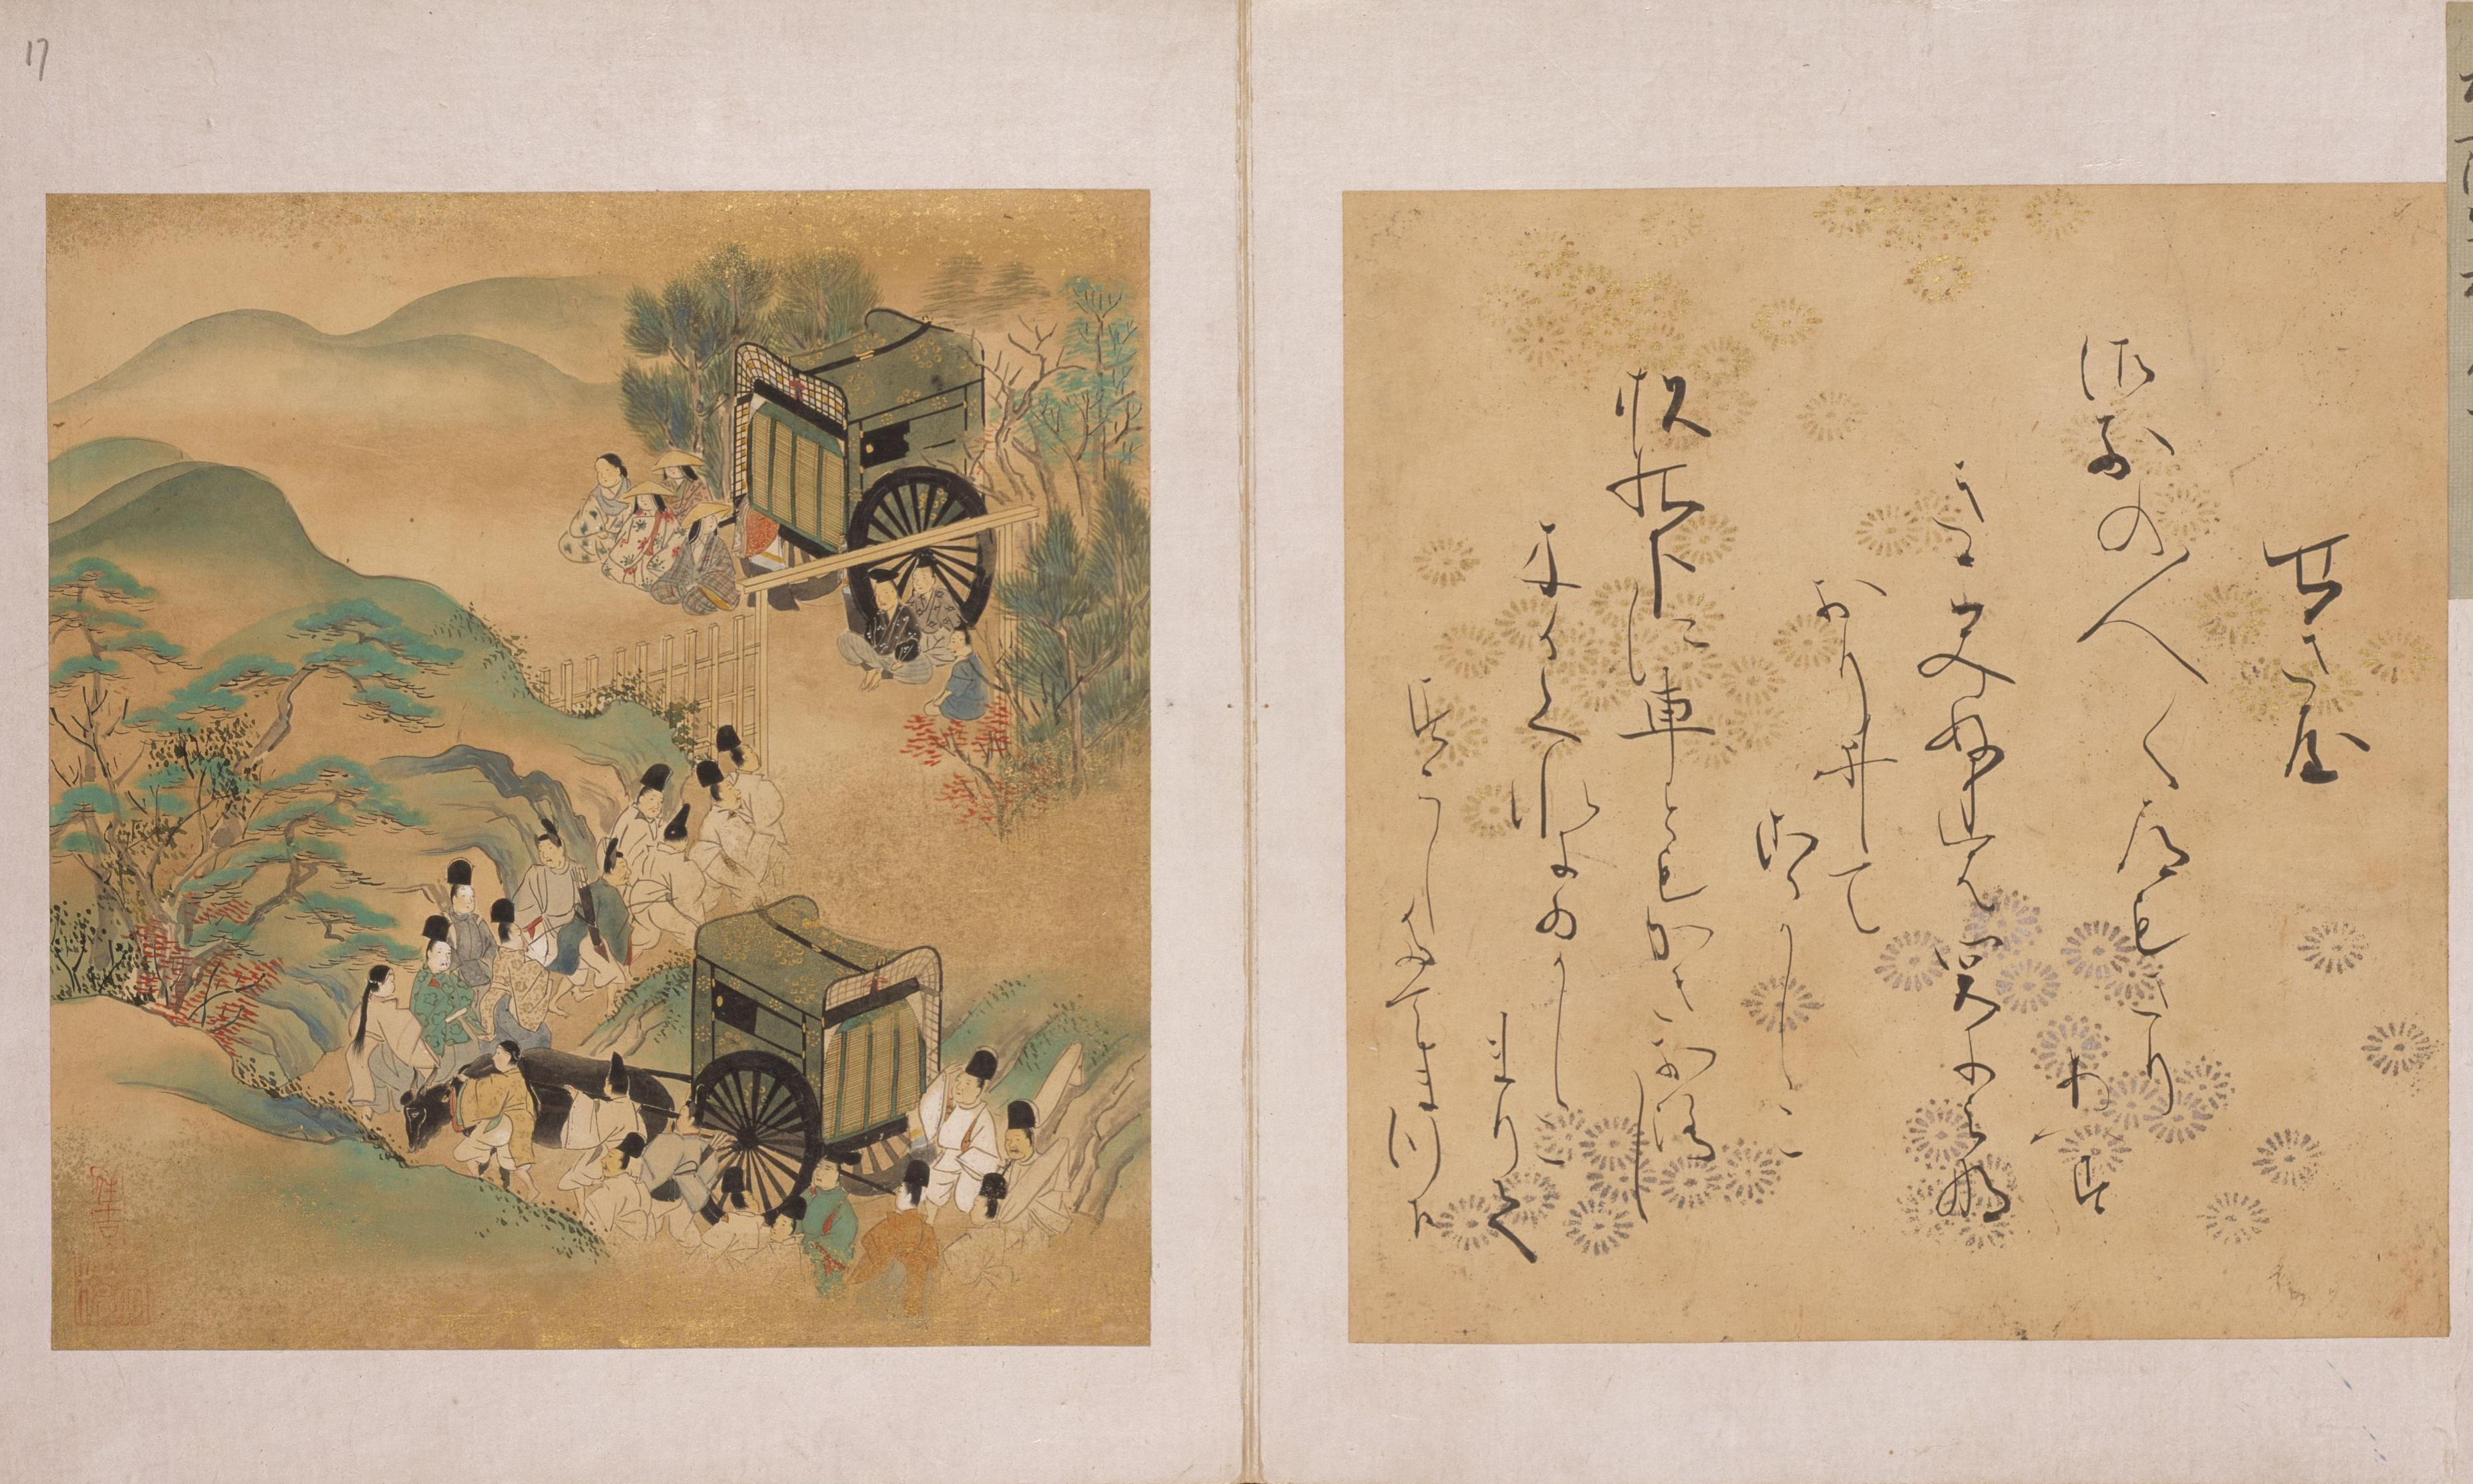 Lost chapter of world's first novel found in Japanese storeroom